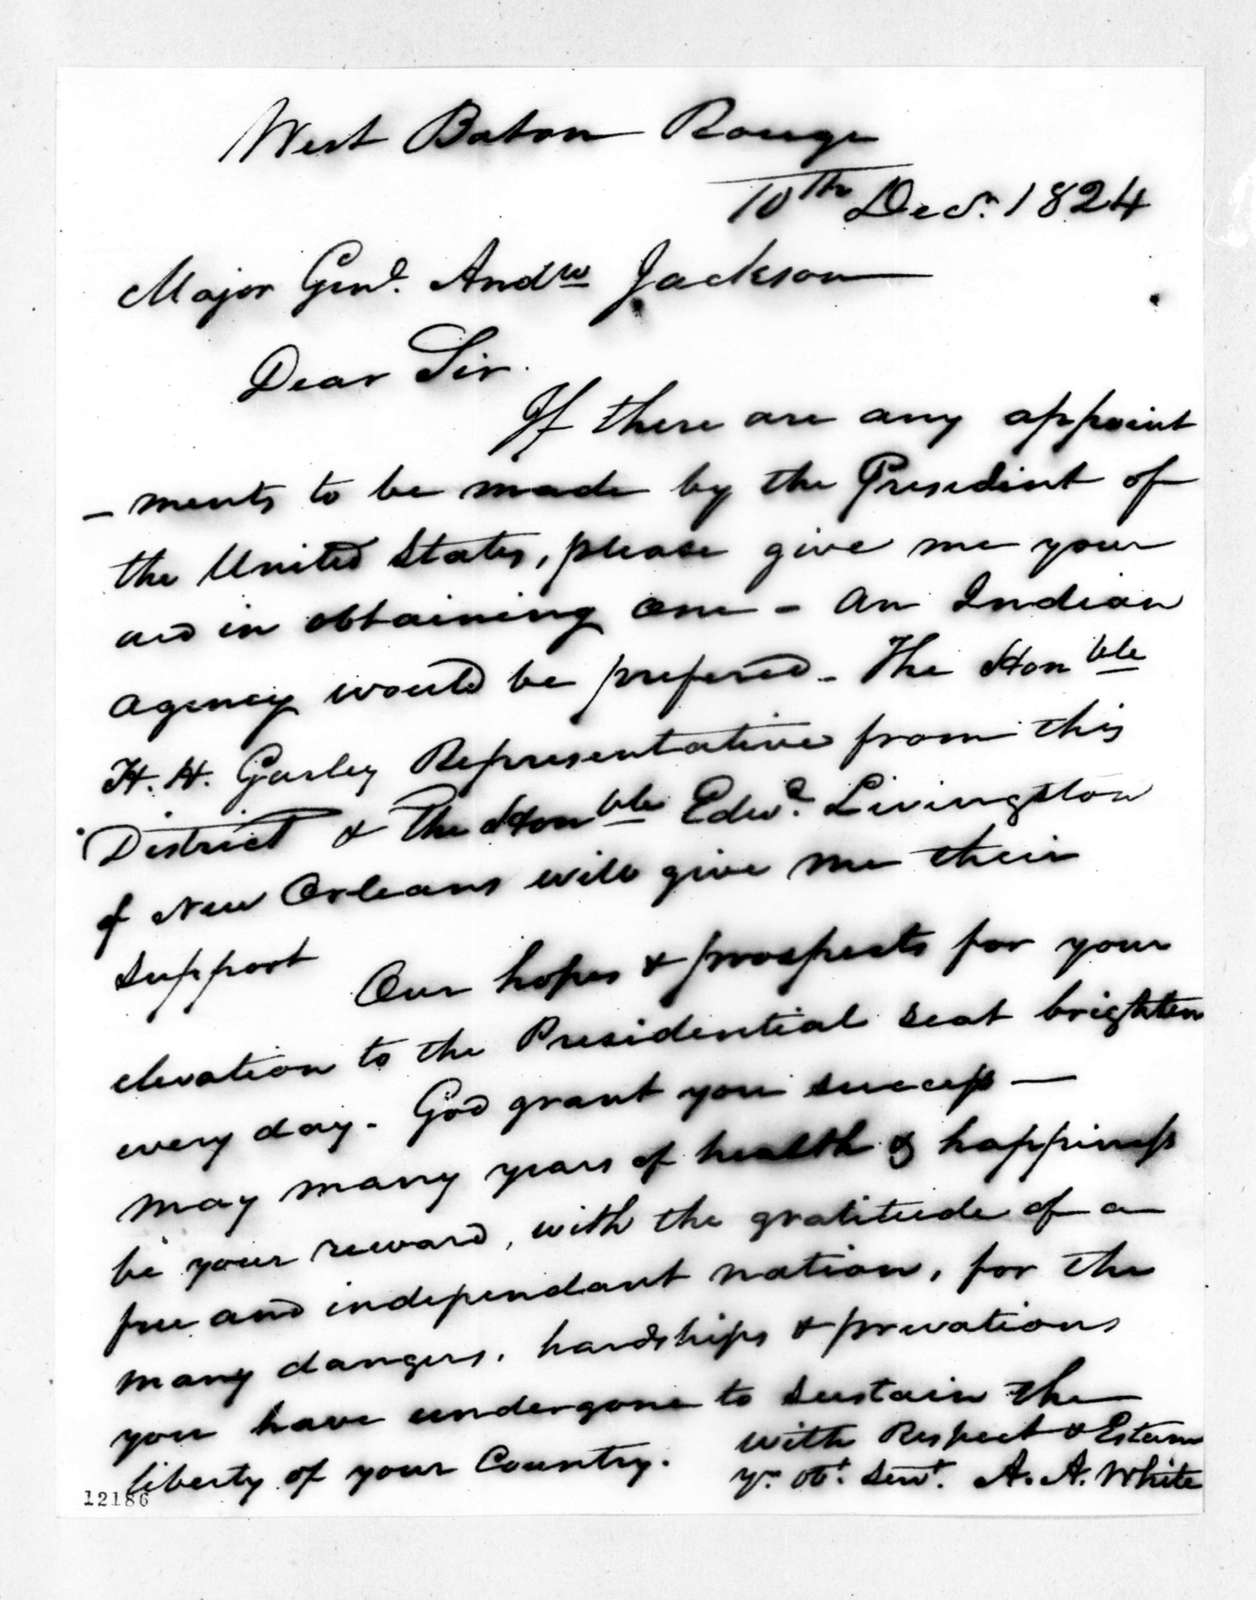 Alexander A. White to Andrew Jackson, December 10, 1824